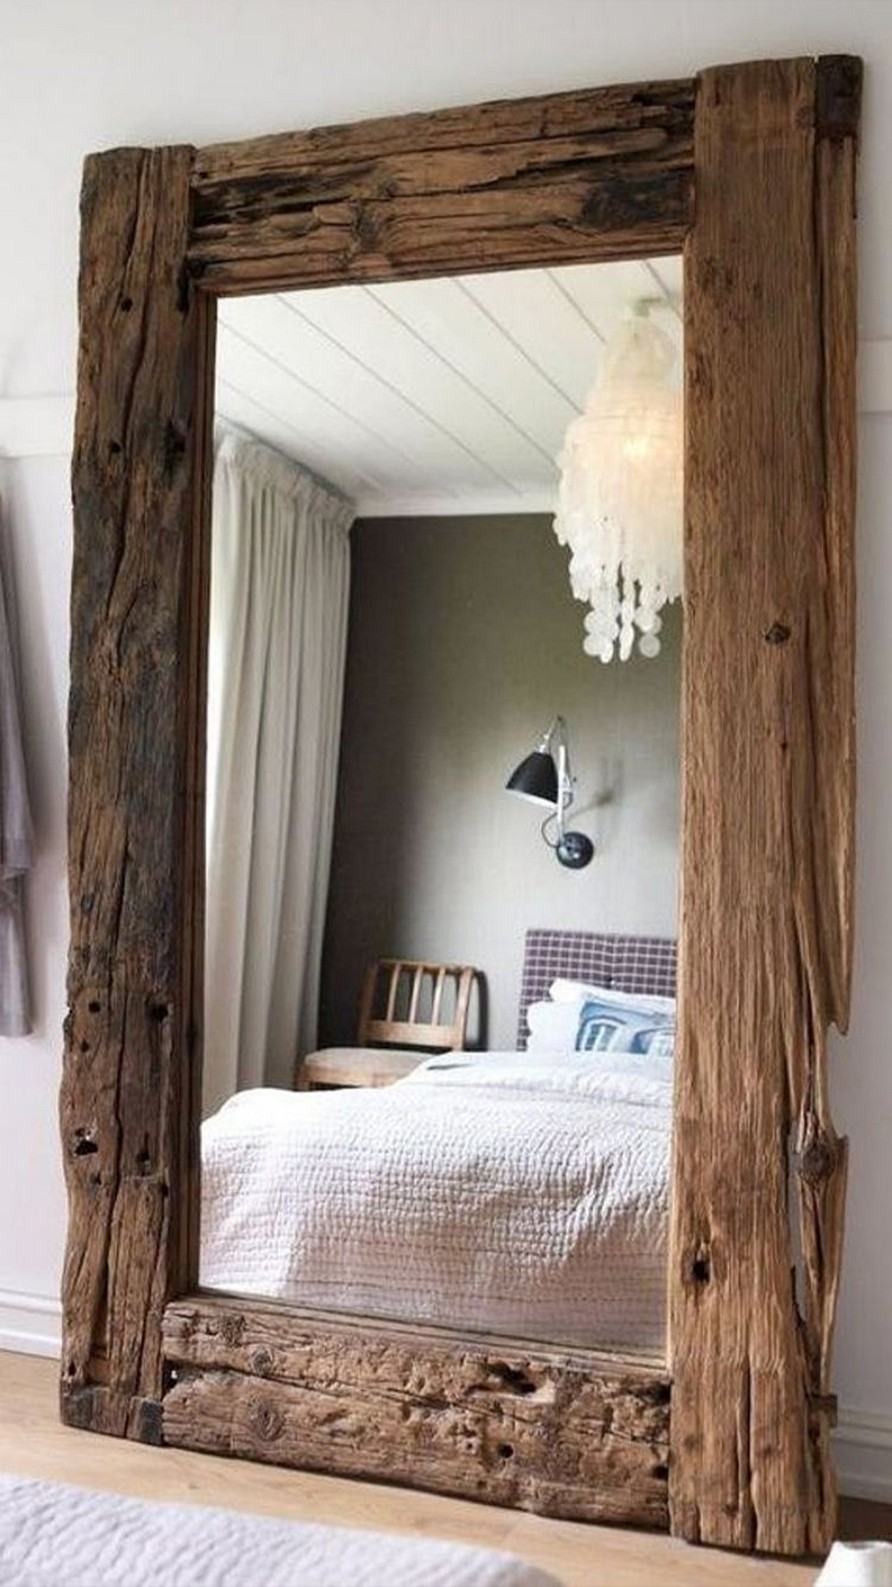 67 Rustic Home Decorating Ideas In 2020 Home Decor 55